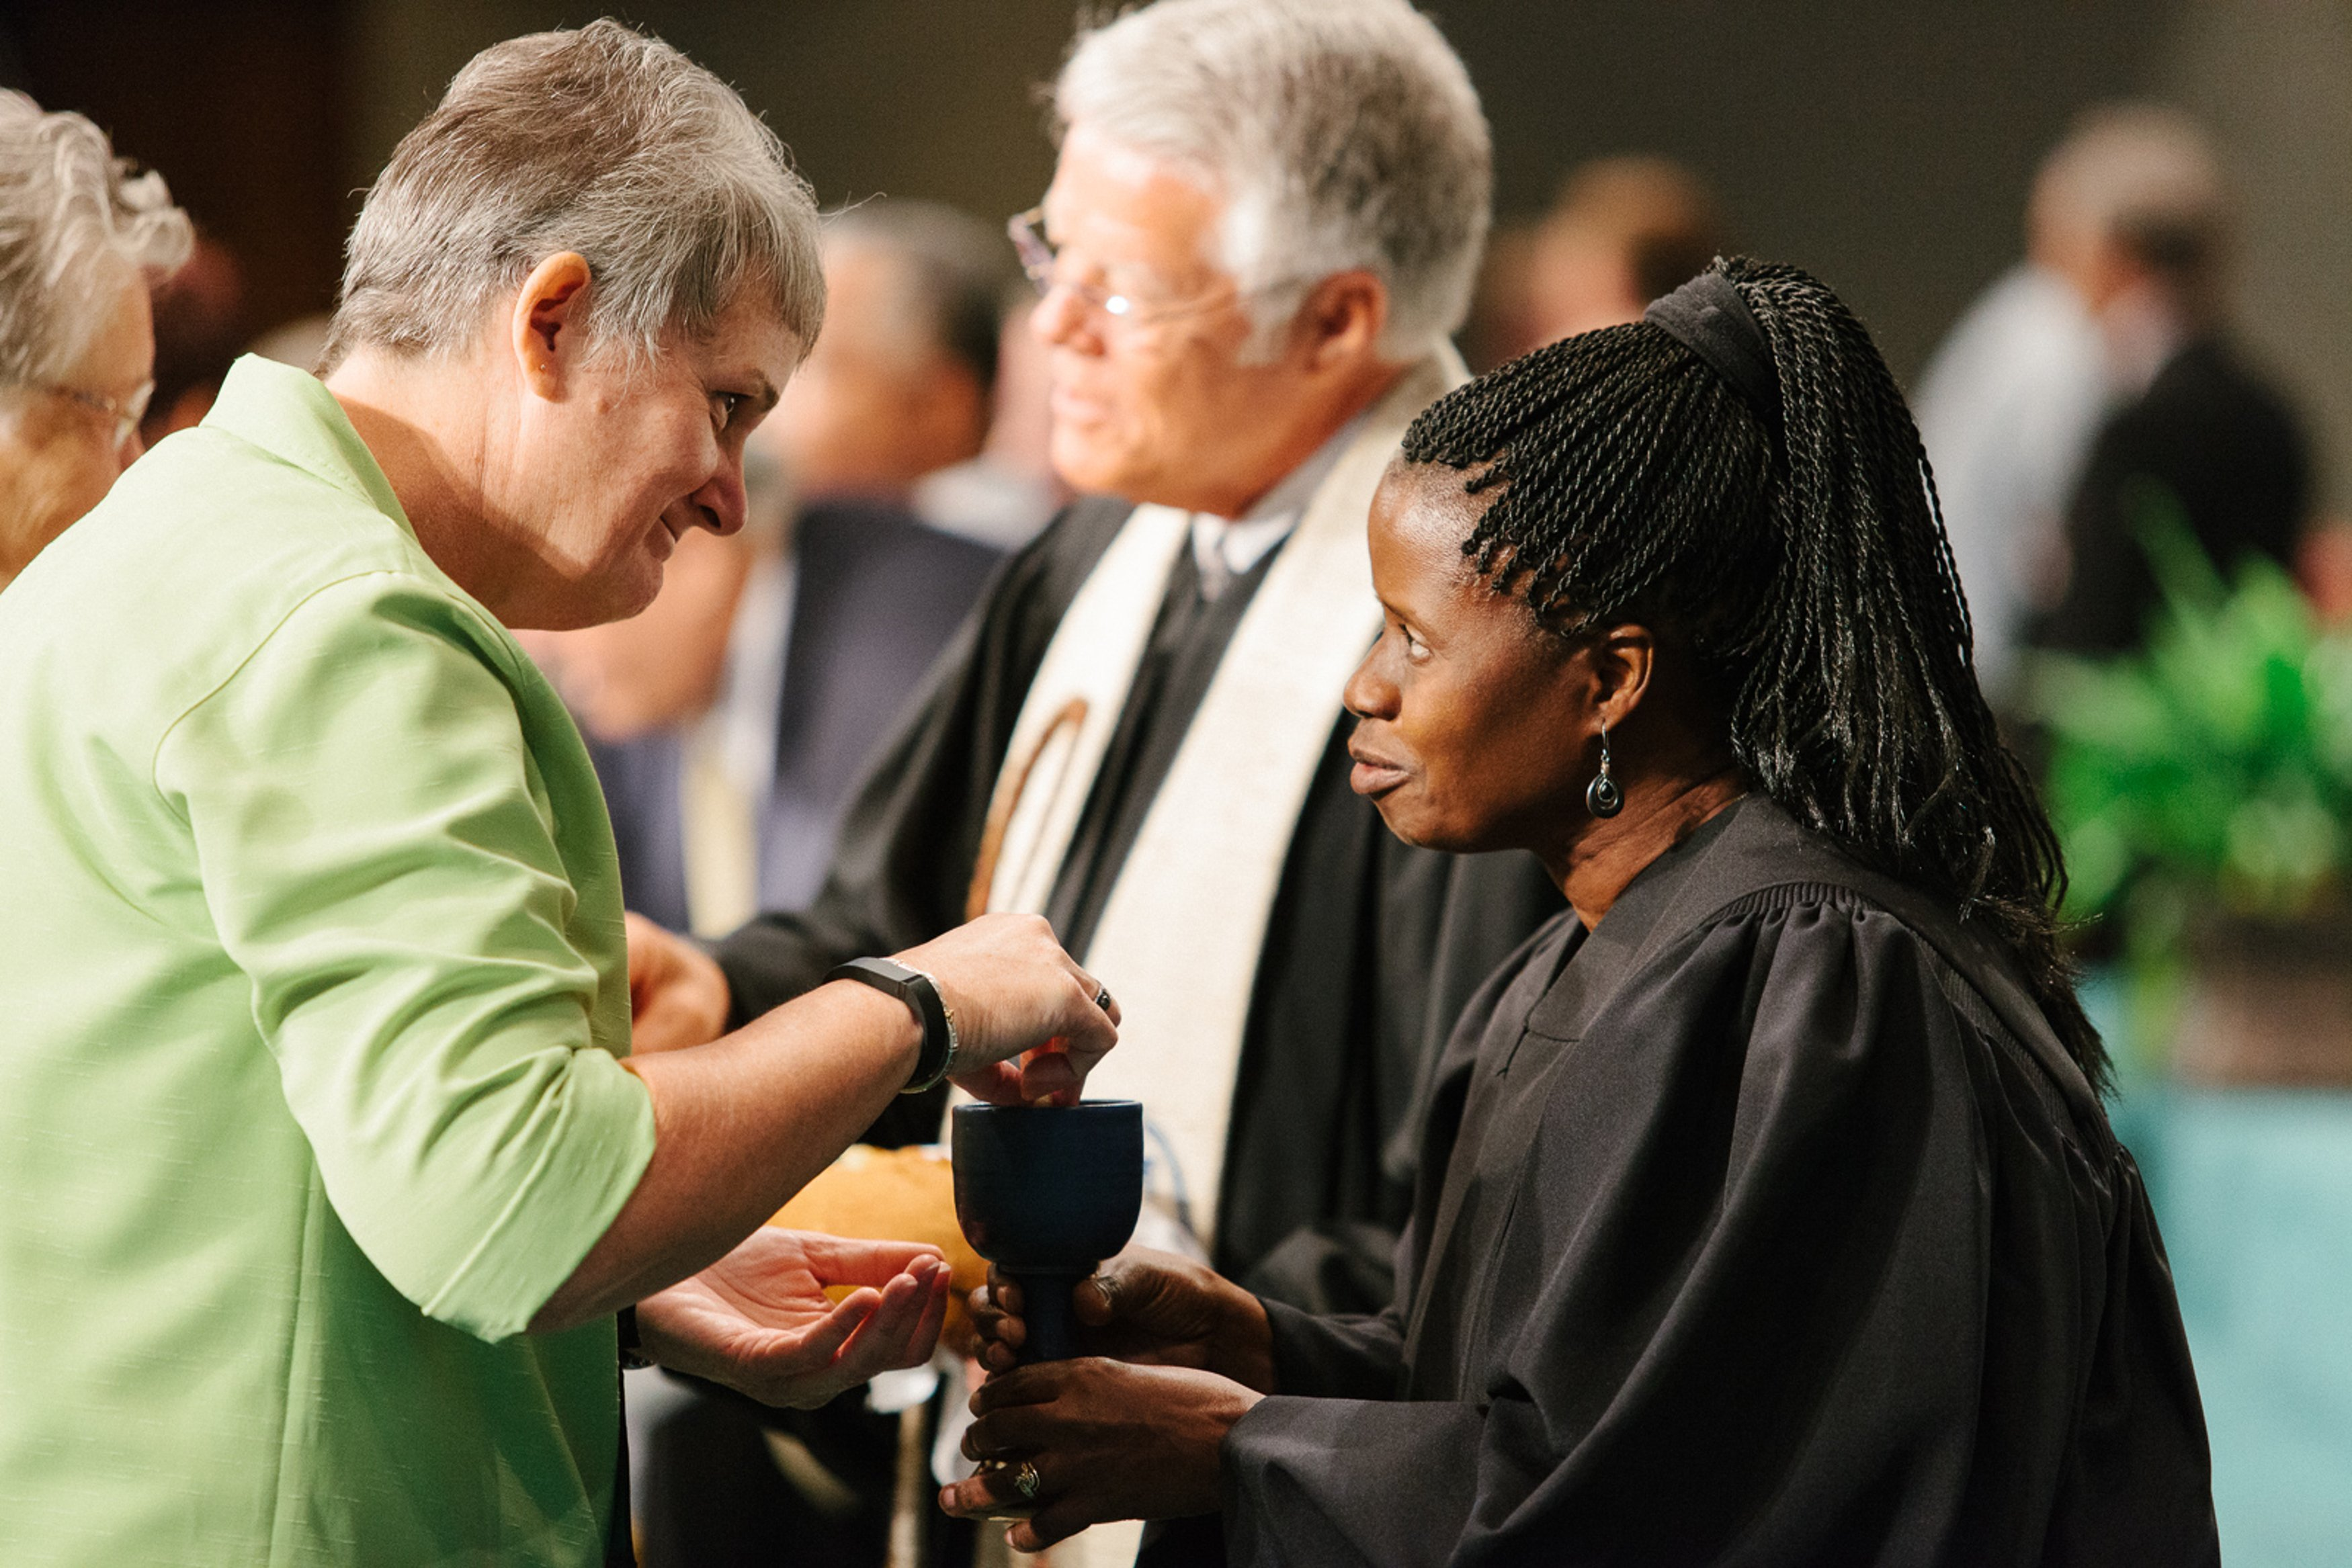 The Rev. Tonya Elmore, pastor at Enterprise First United Methodist Church, takes communion from the Rev. Virginia Kagoro, pastor at Locust Bluff United Methodist Church during the 2015 Alabama-West Florida Conference. Photo by Luke Lucas, Alabama-West Florida Conference.